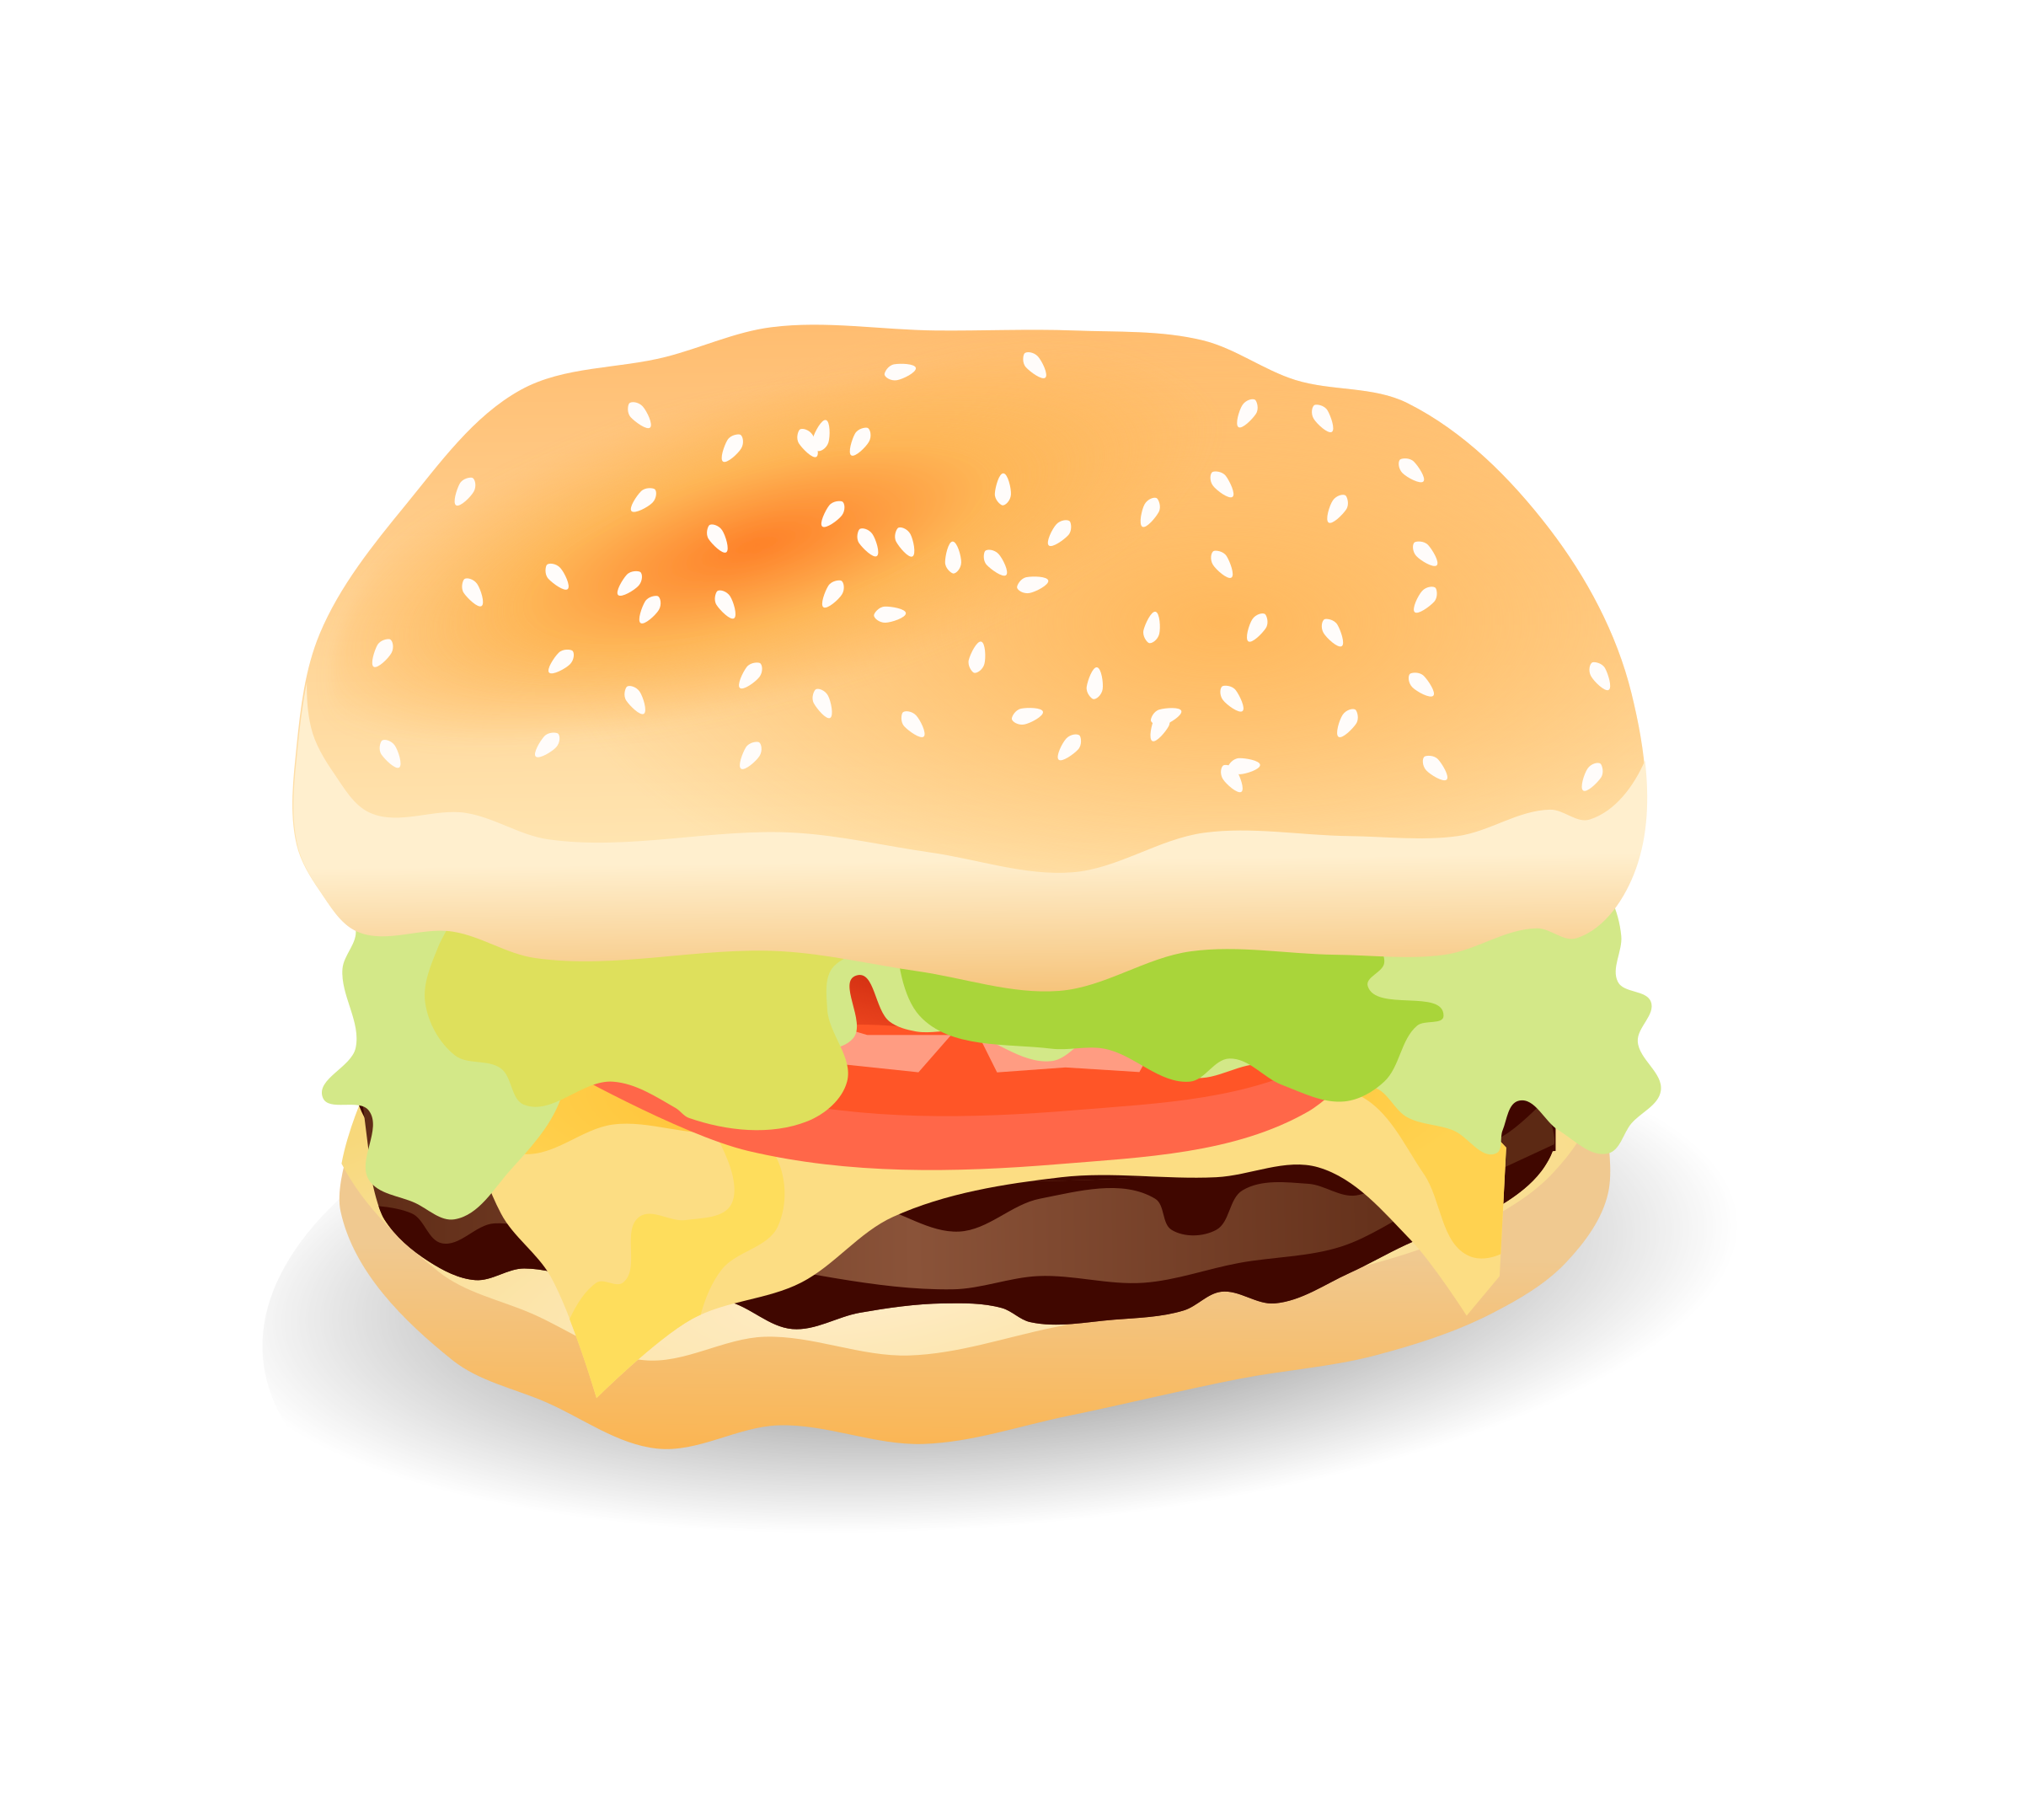 clipart cheeseburger rh openclipart org cheeseburger clipart free cheeseburger in paradise clipart